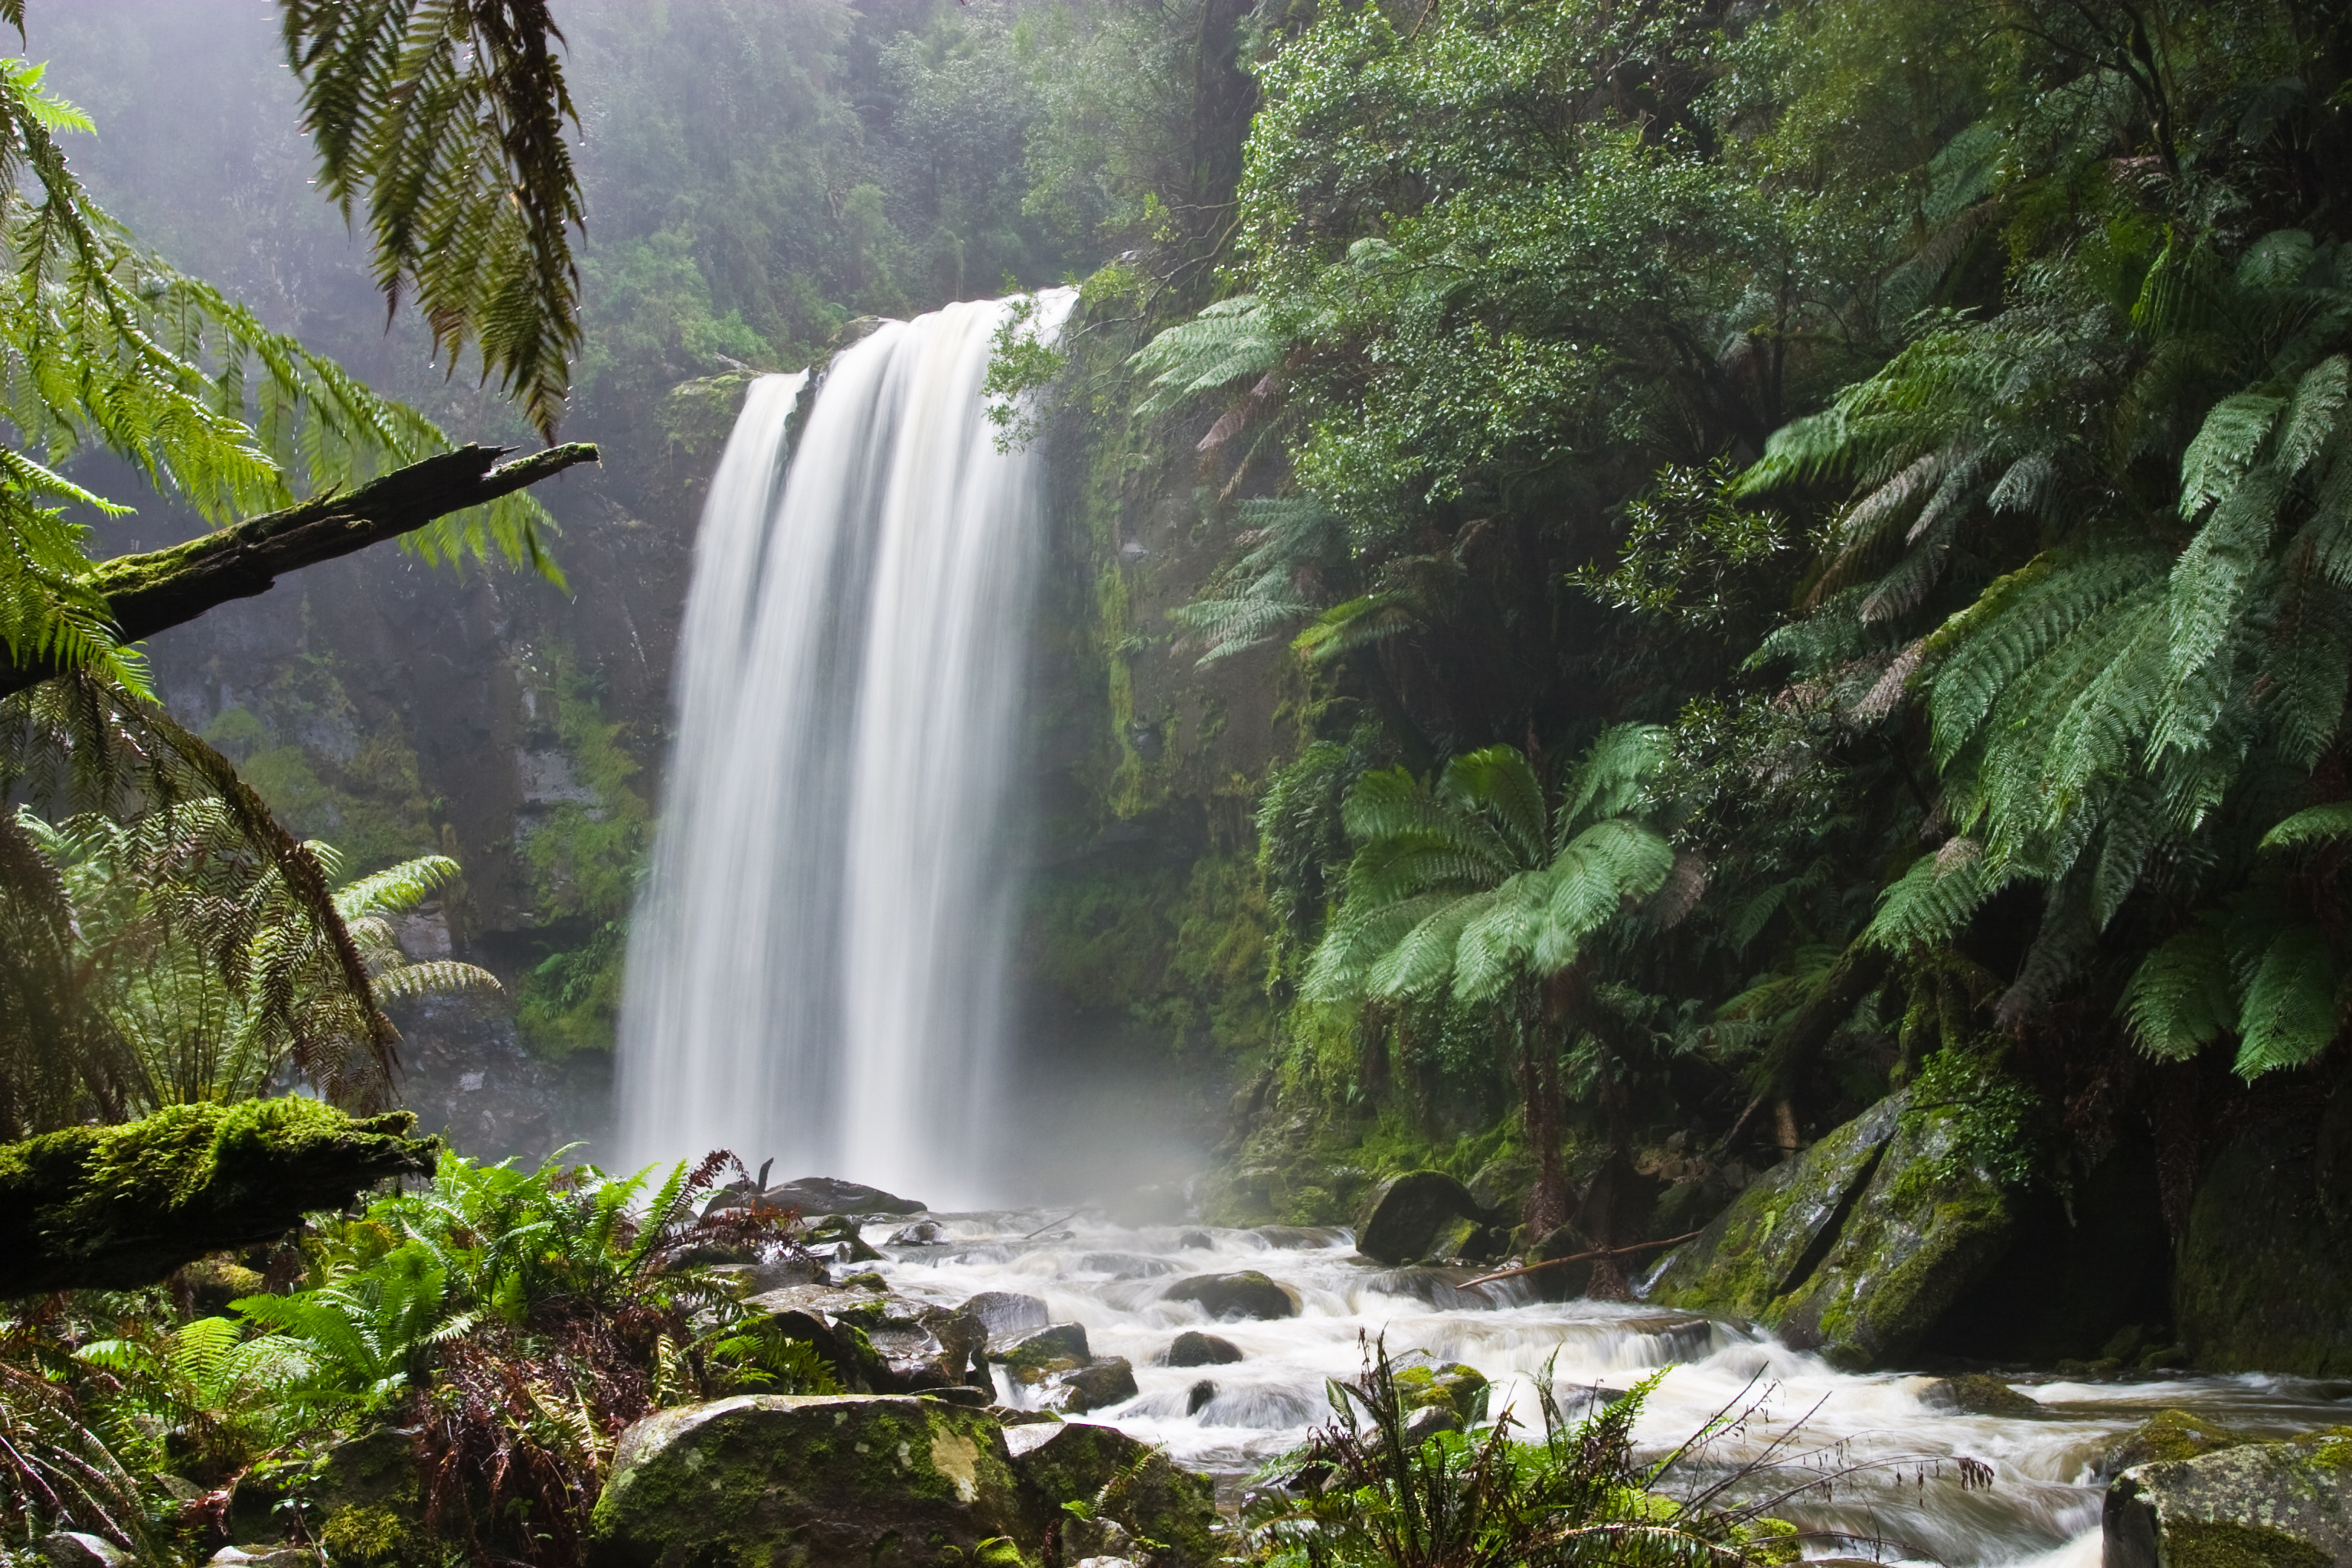 http://upload.wikimedia.org/wikipedia/commons/3/36/Hopetoun_falls.jpg